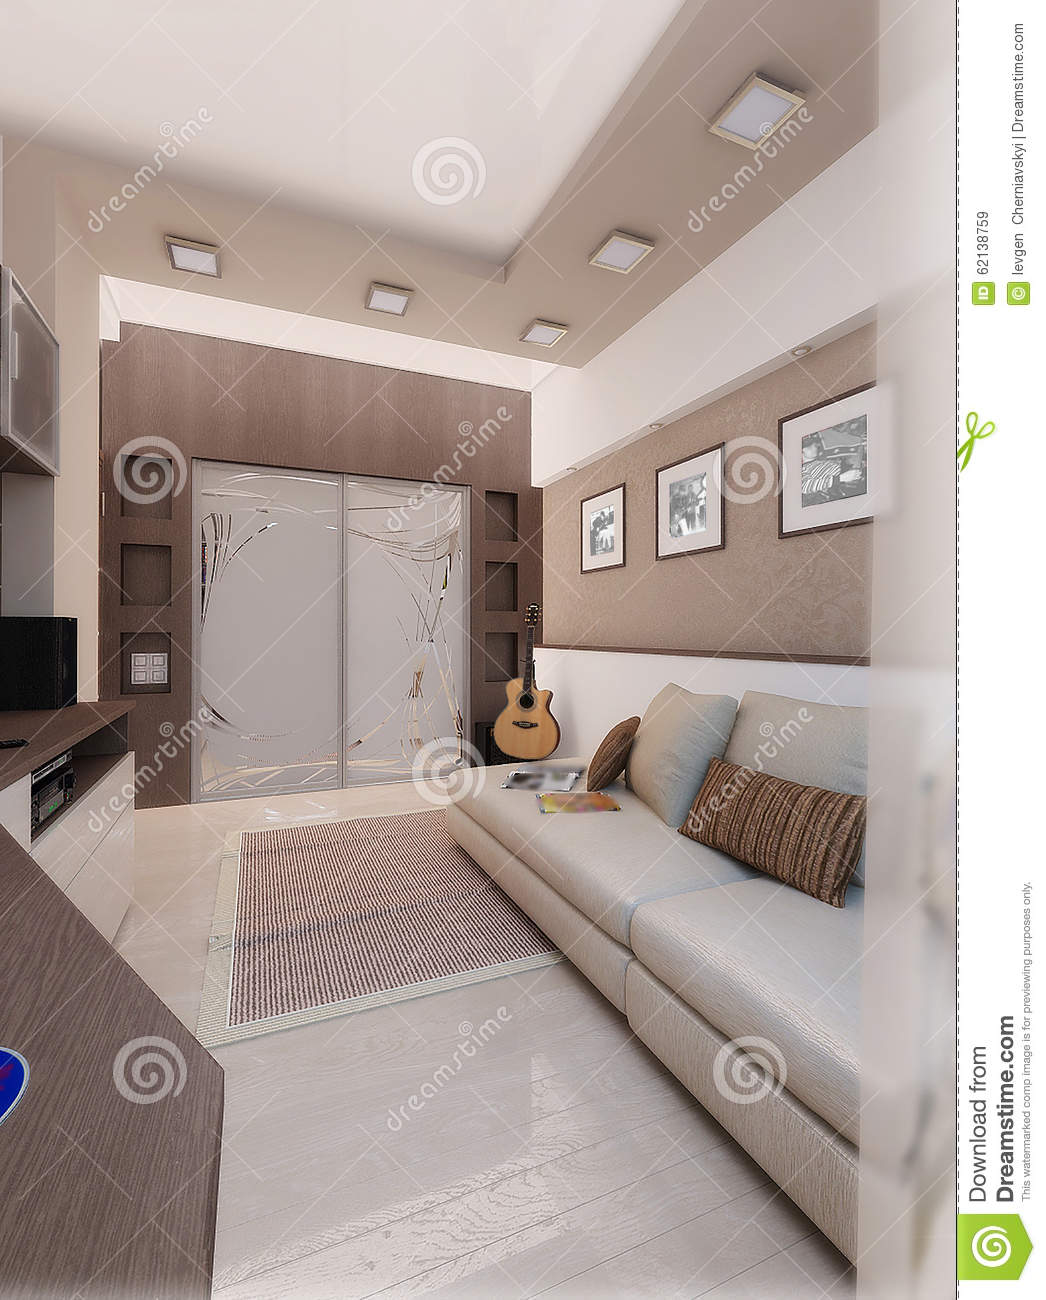 Bedroom Design Ideas Interior Render